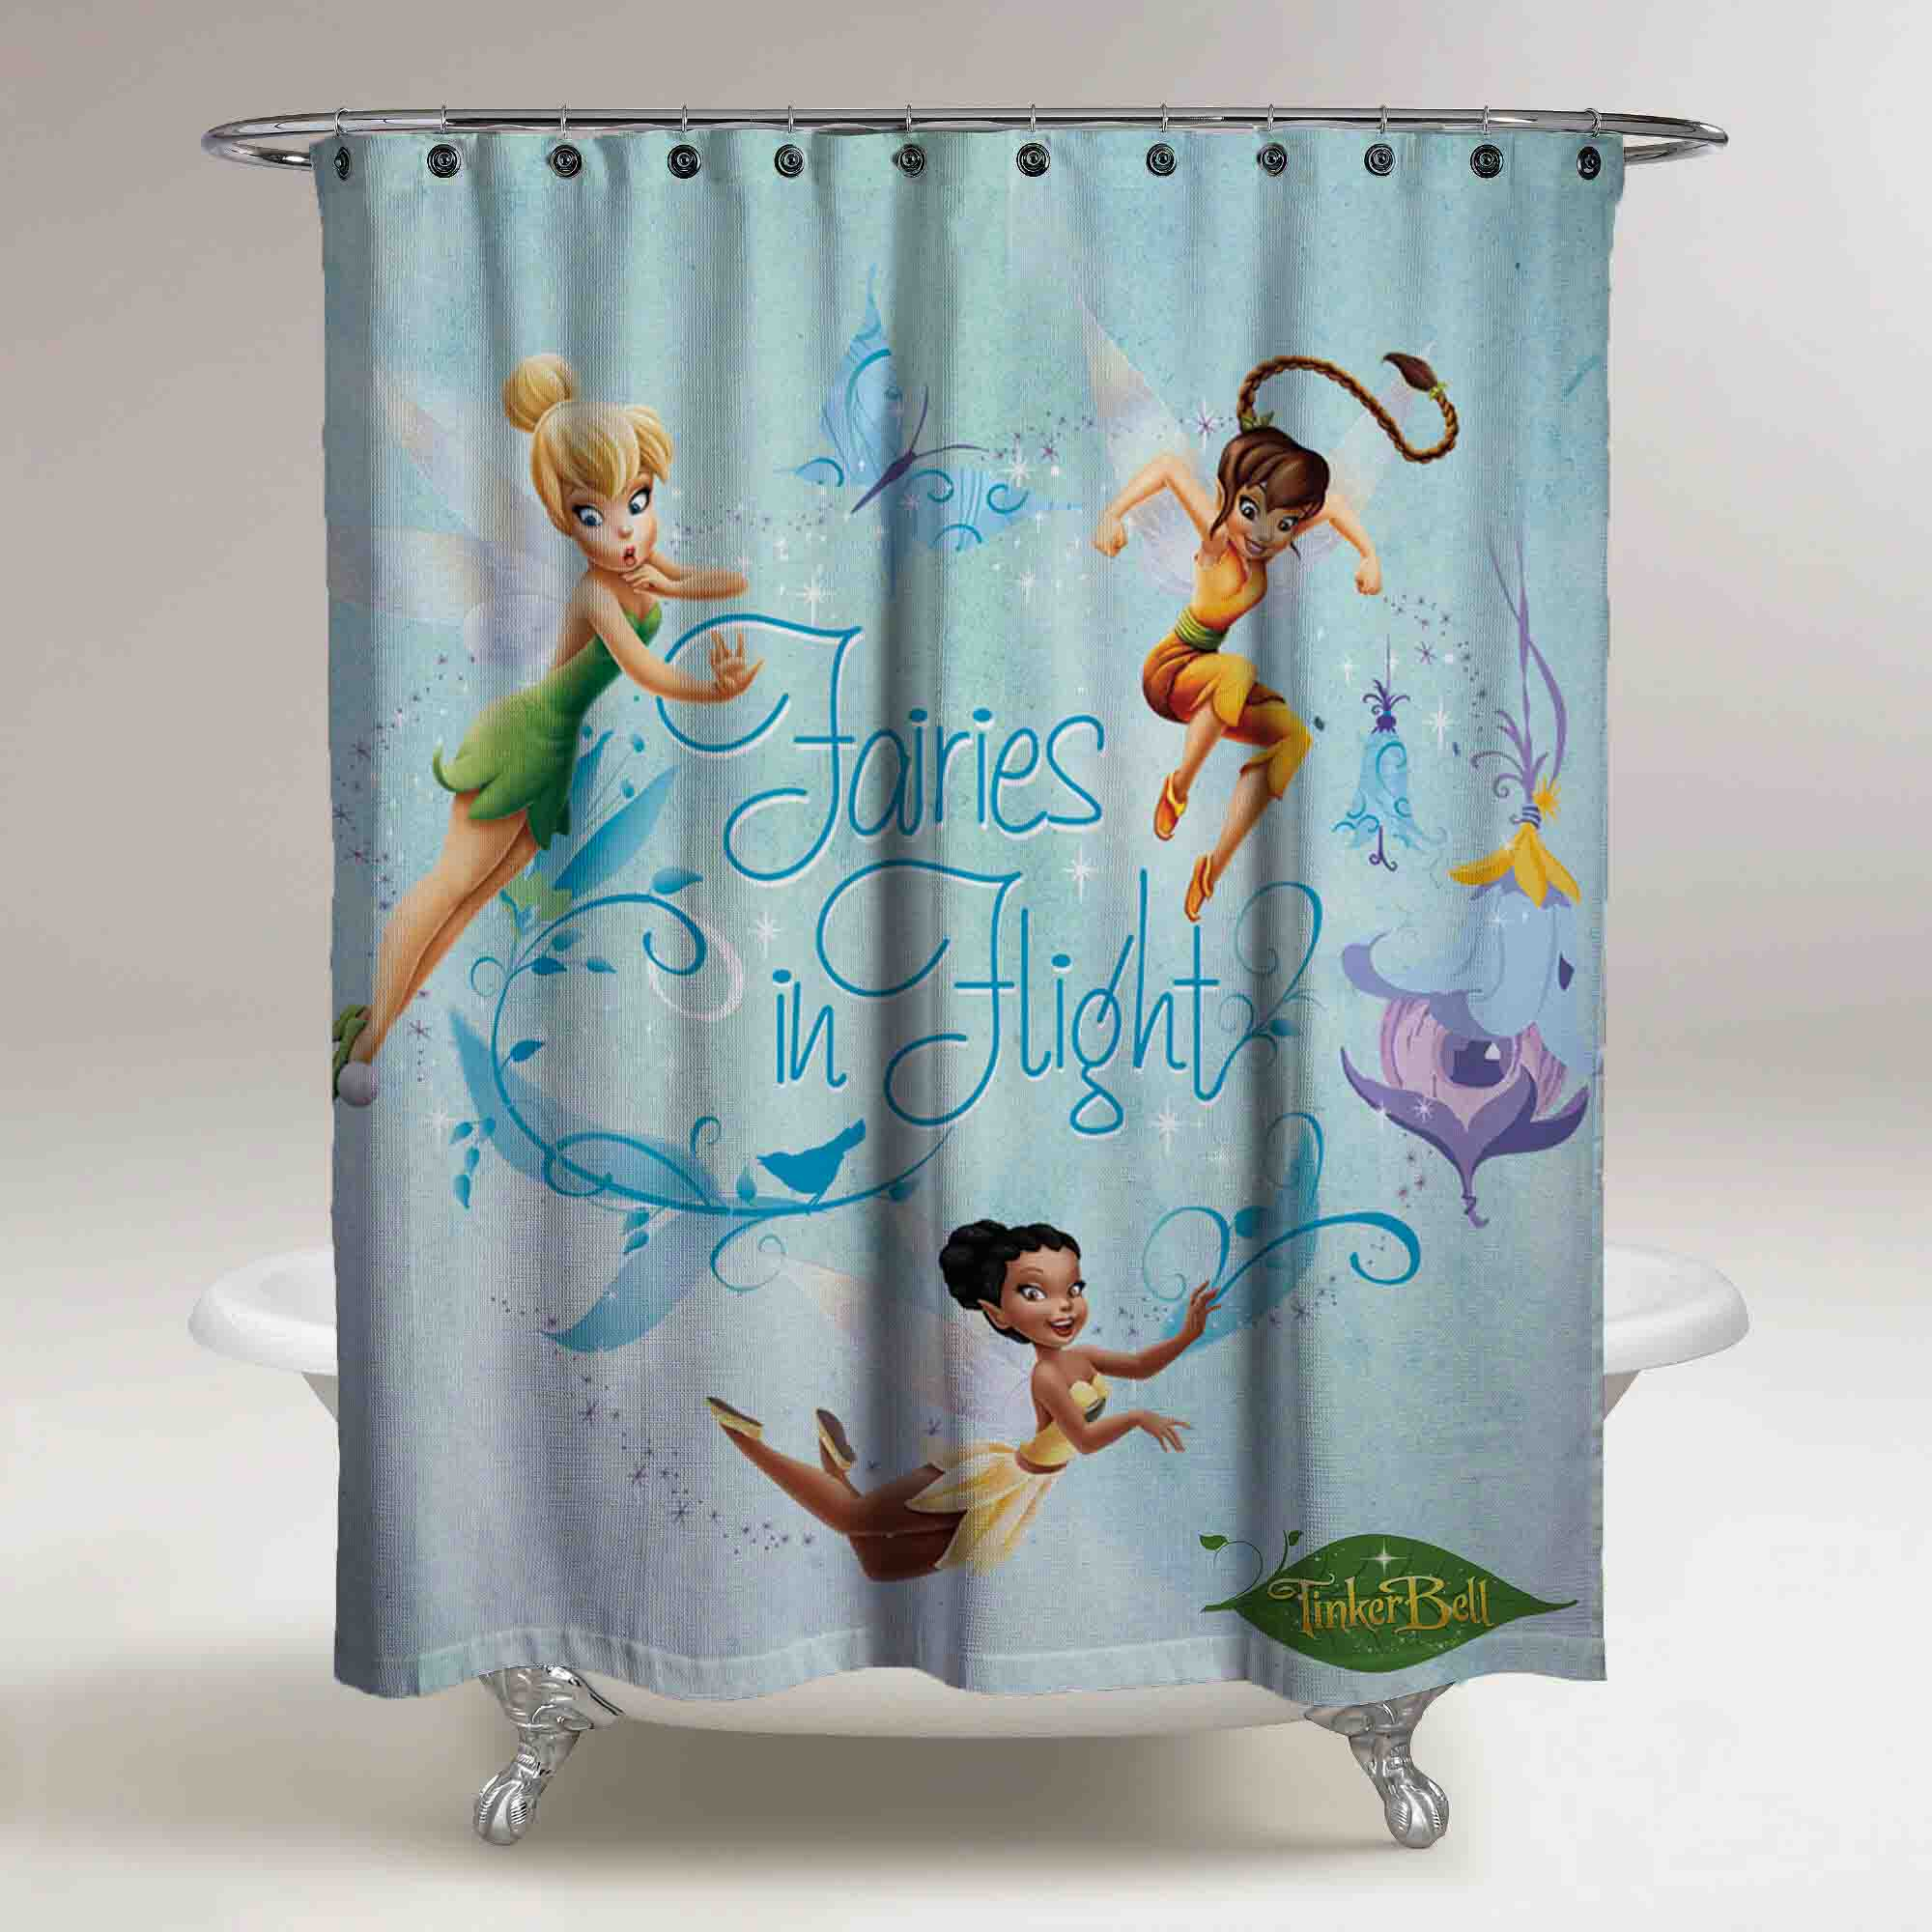 Tinker Bell Disney Princes Fairies In Flight Original